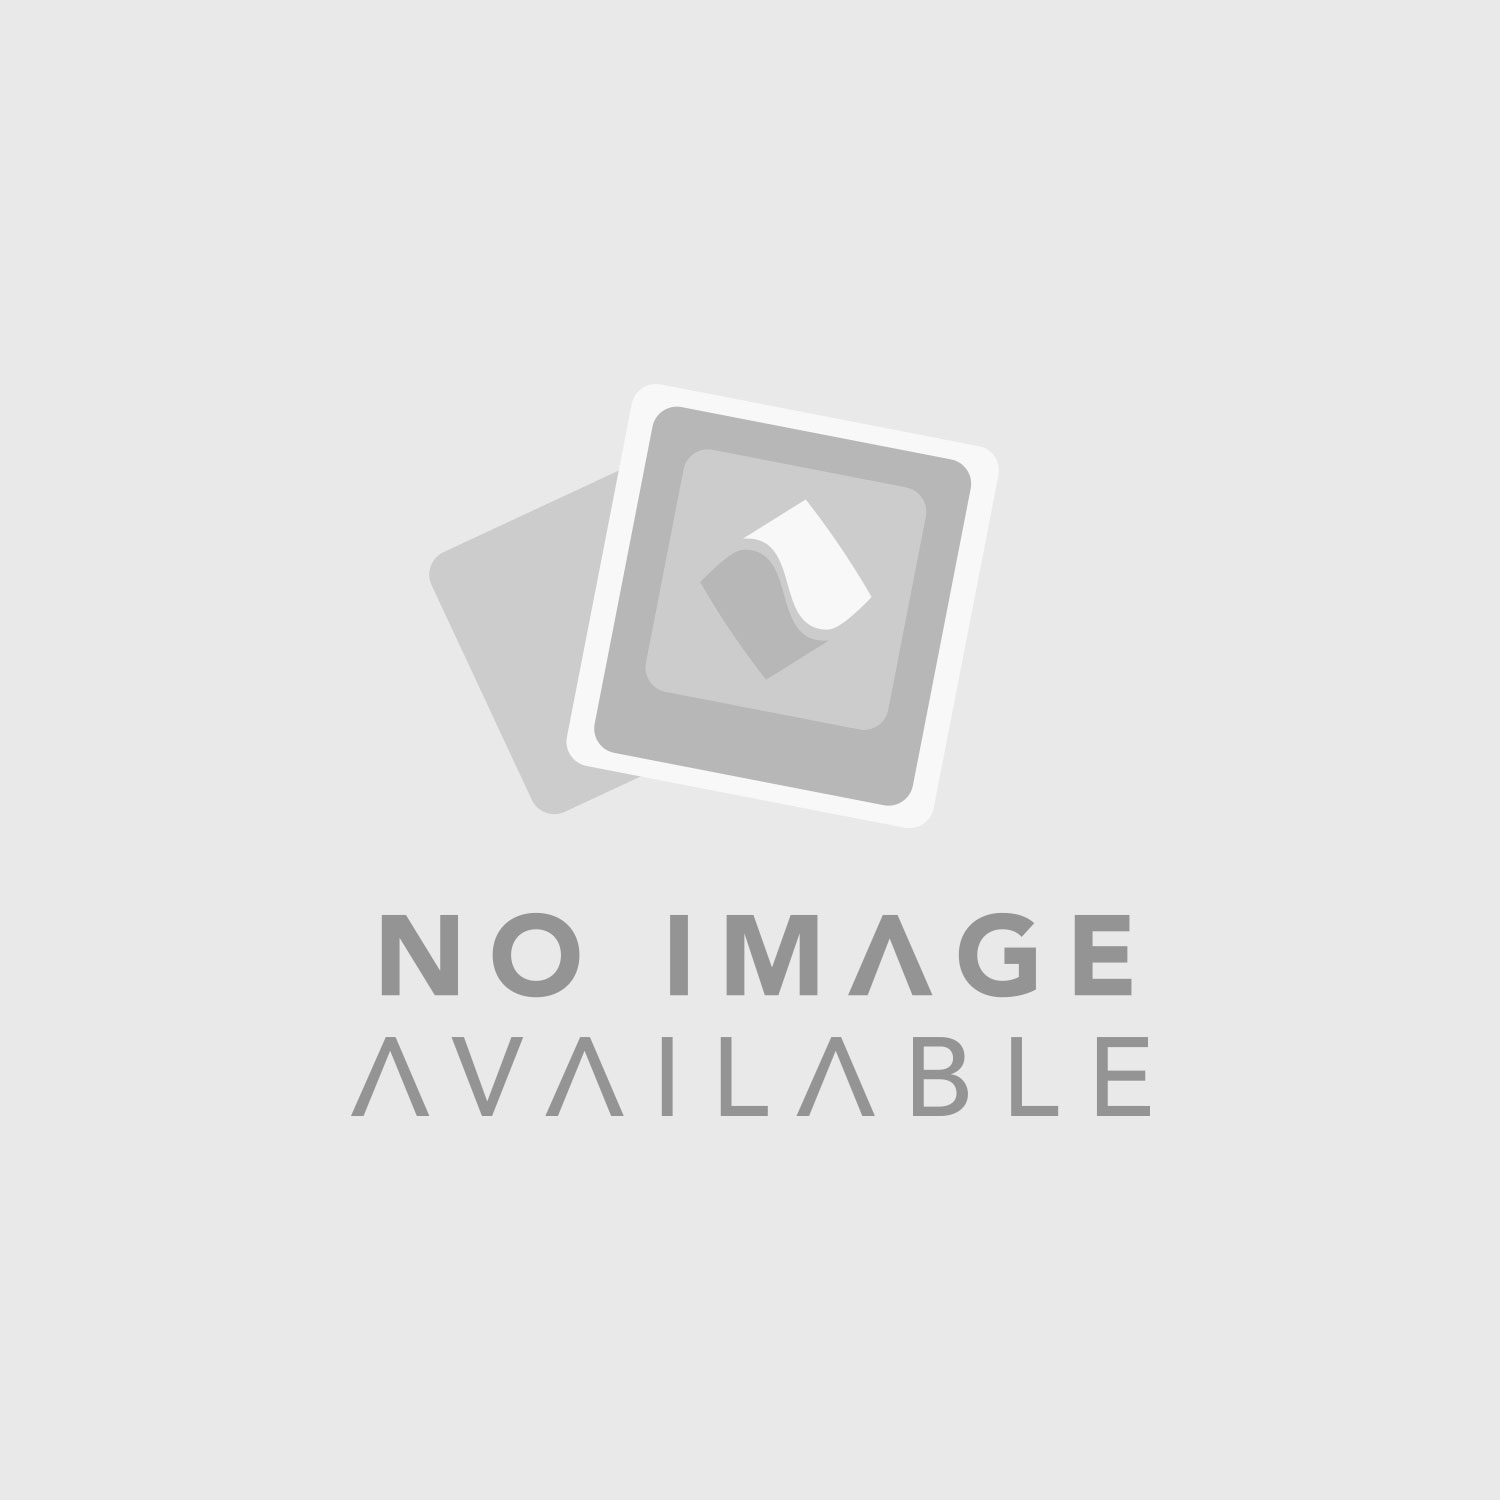 NTi Exel Acoustics Set with M4261 Measurement Microphone (Class 2)